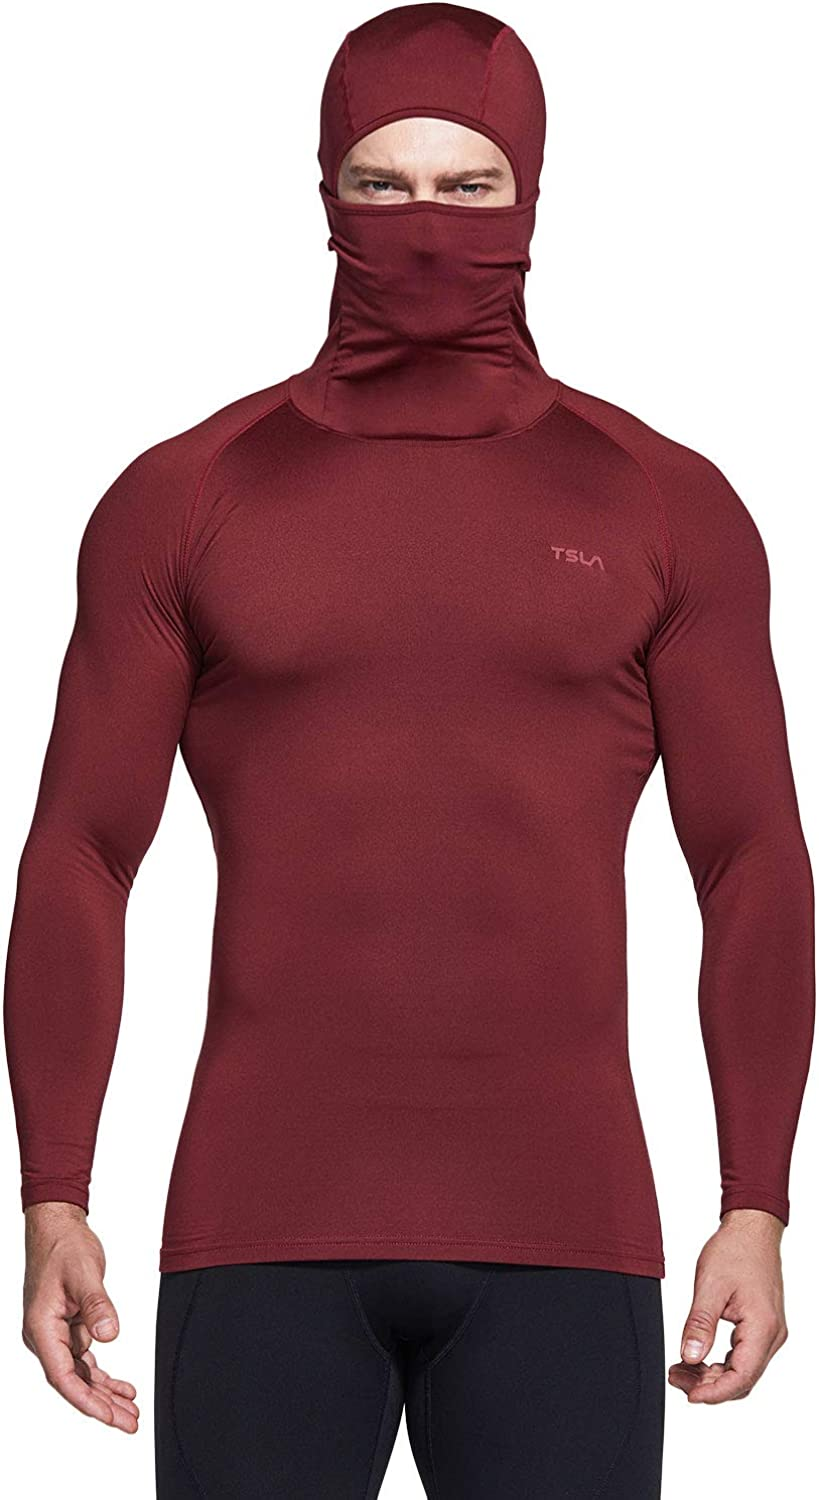 TSLA Mens Hoodie Mask Thermal Compression Baselayer Top Cool Dry Active Running